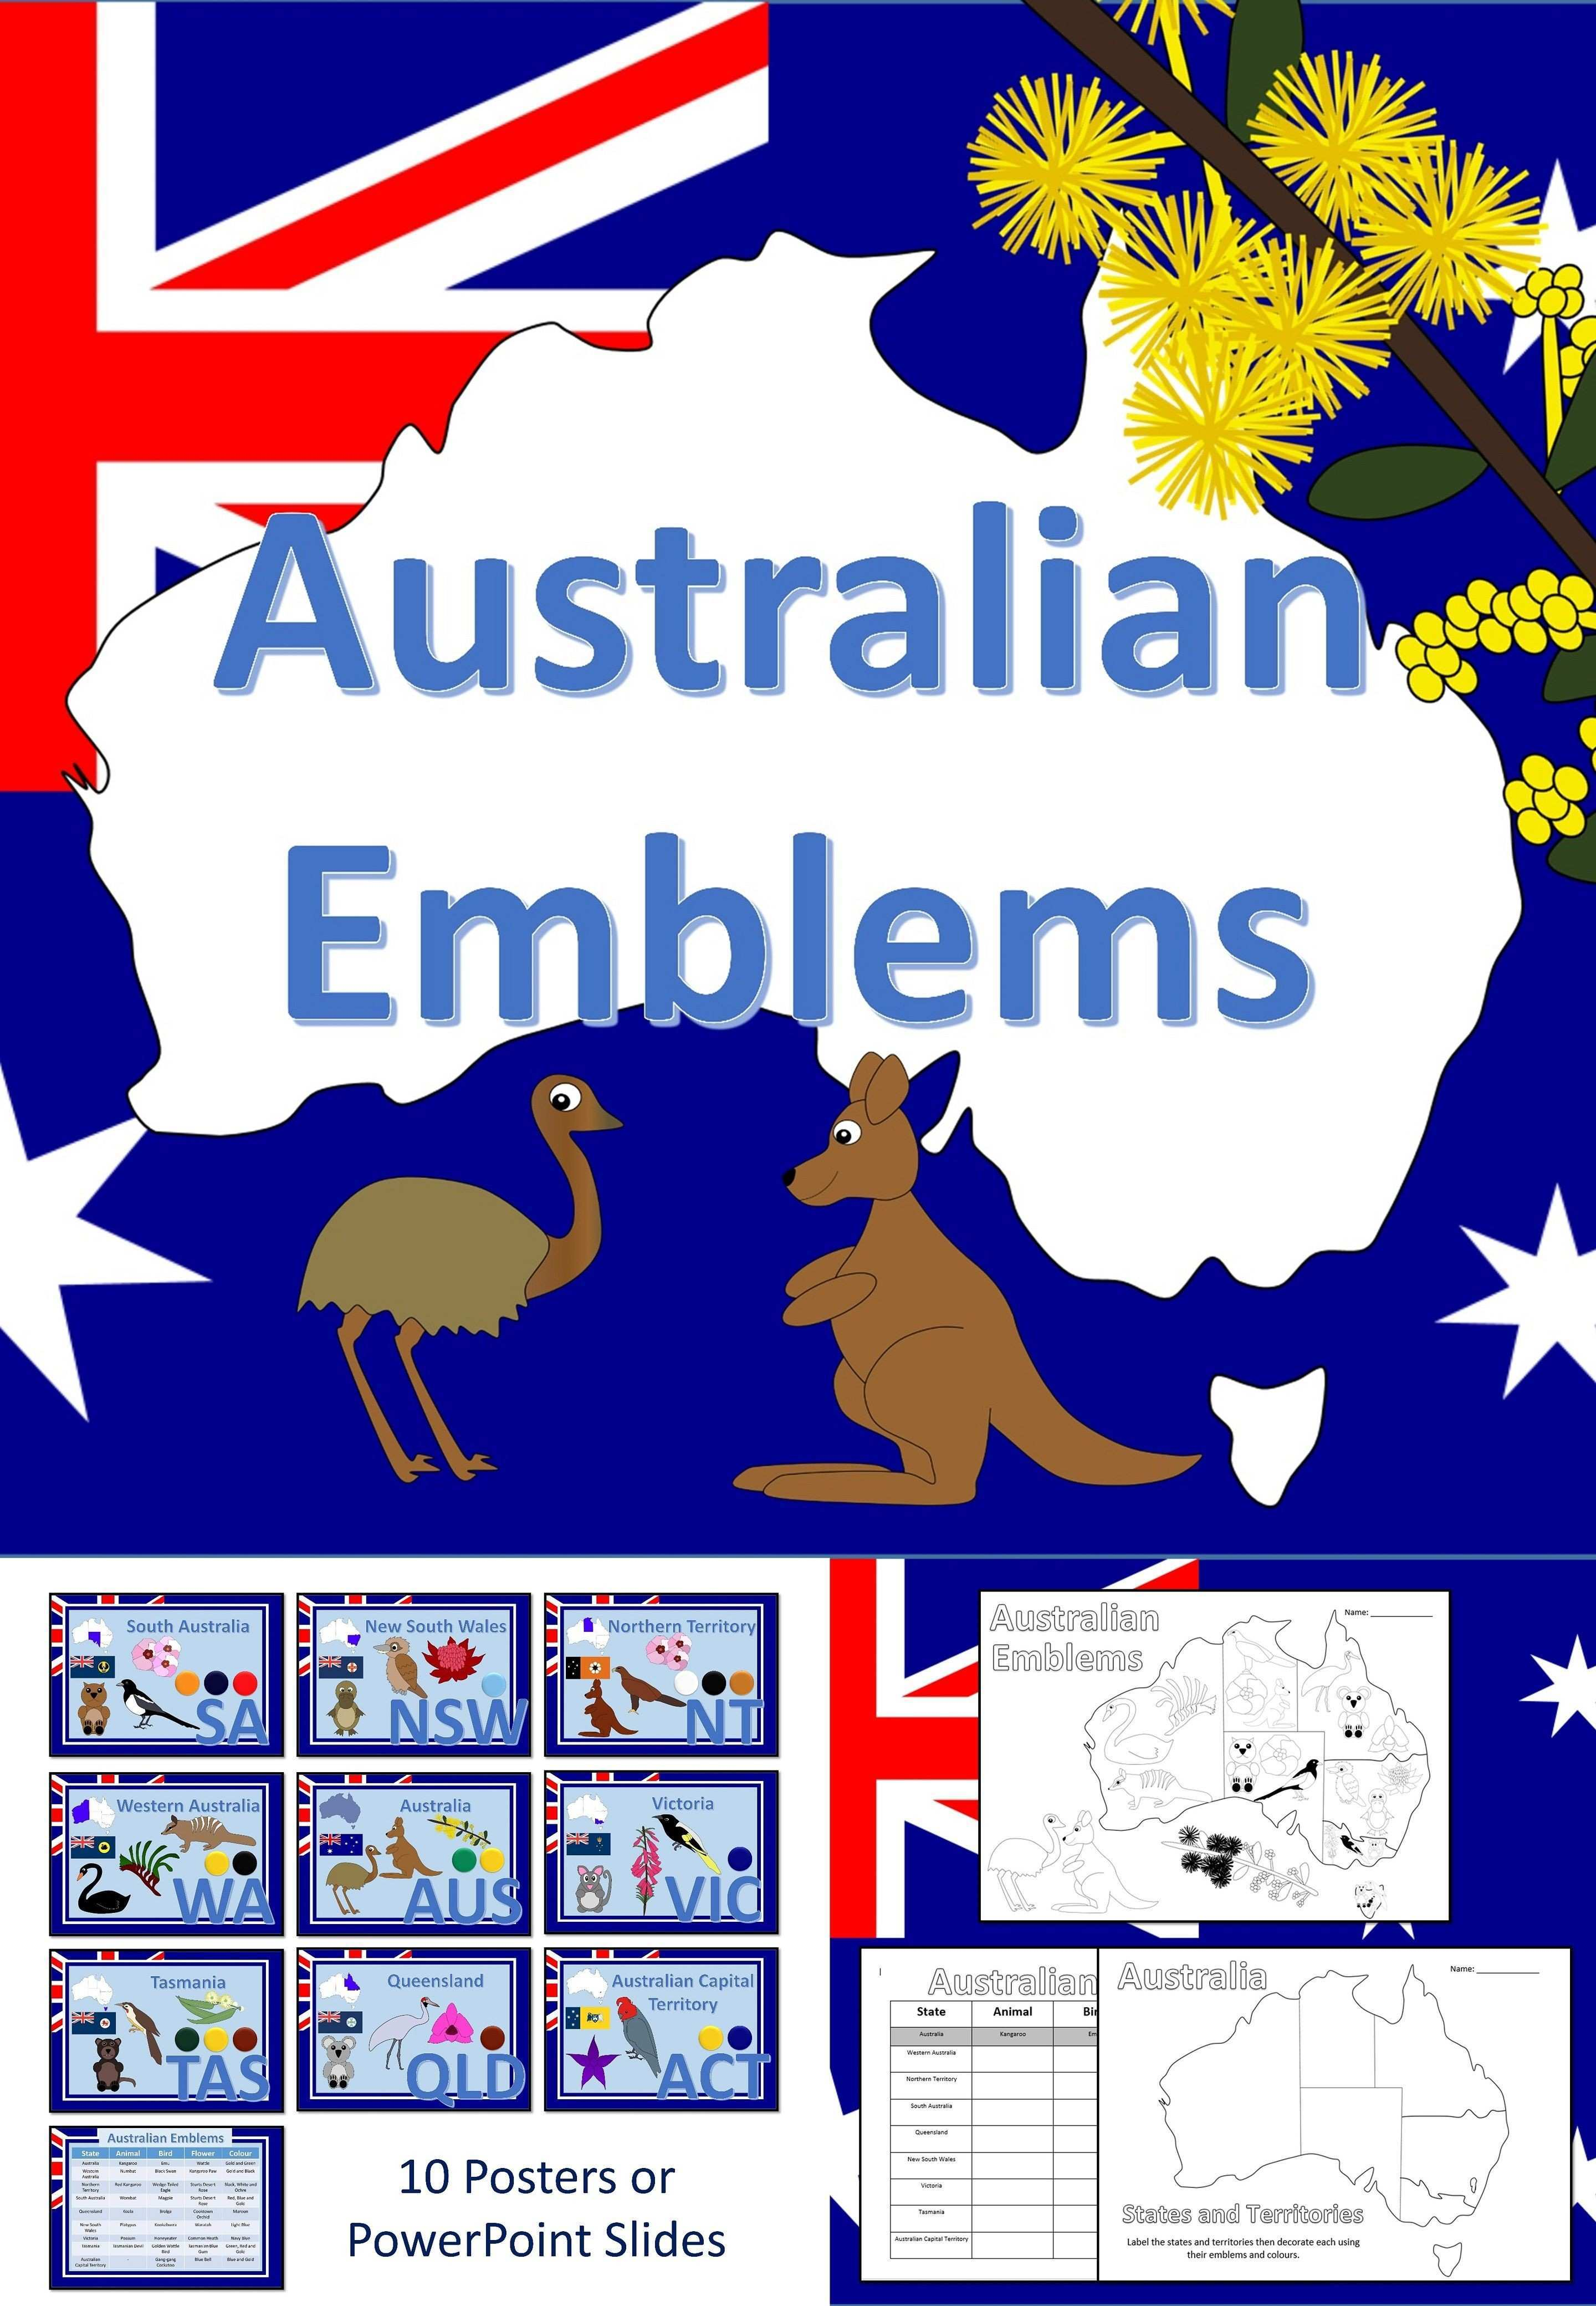 how to create a poster in powerpoint best of australian emblems